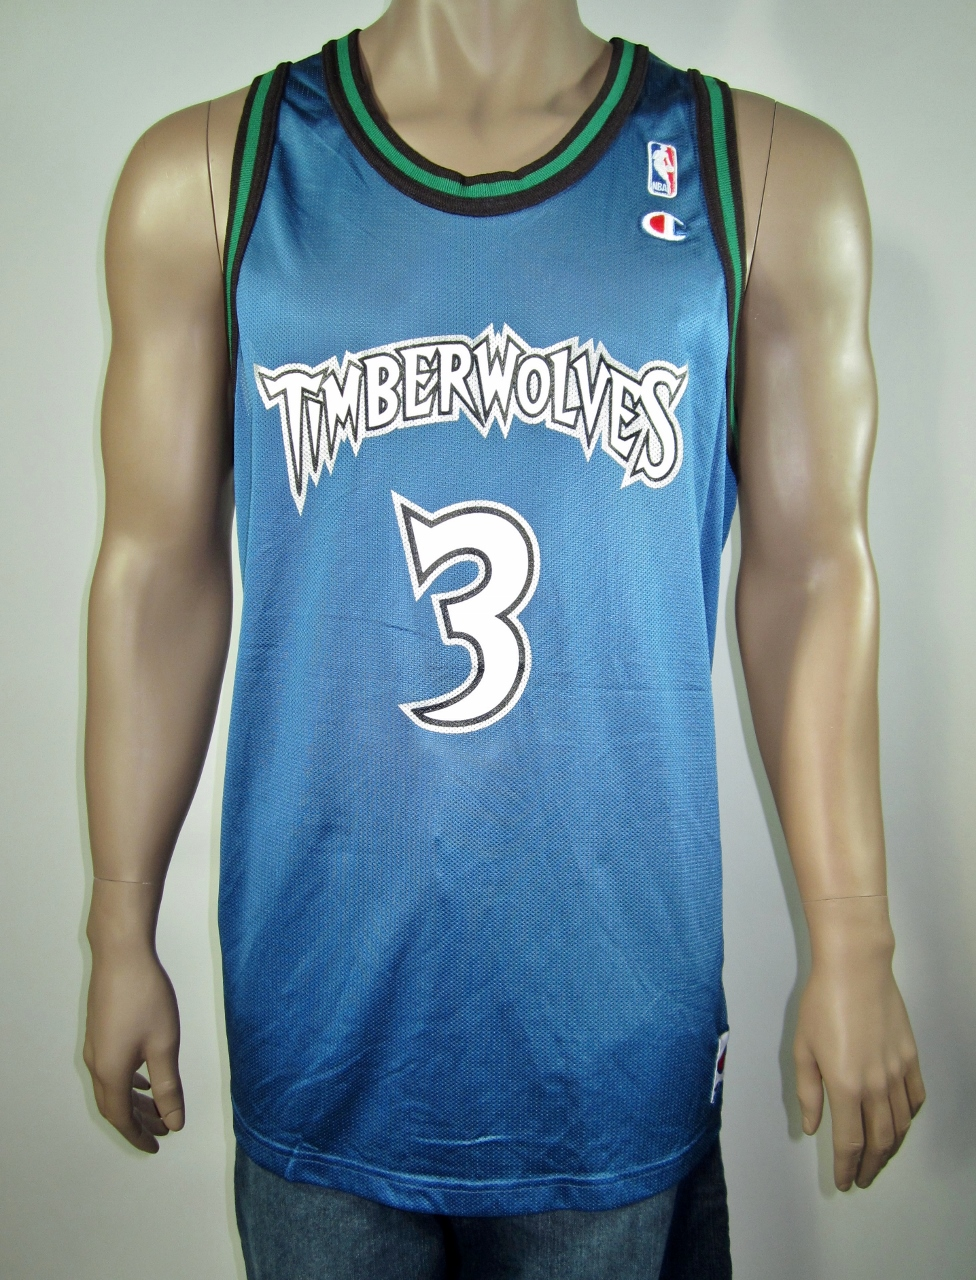 d7fe9d898a8 Stephon Marbury Minnesota Timberwolves Champion Jersey NWT on Storenvy